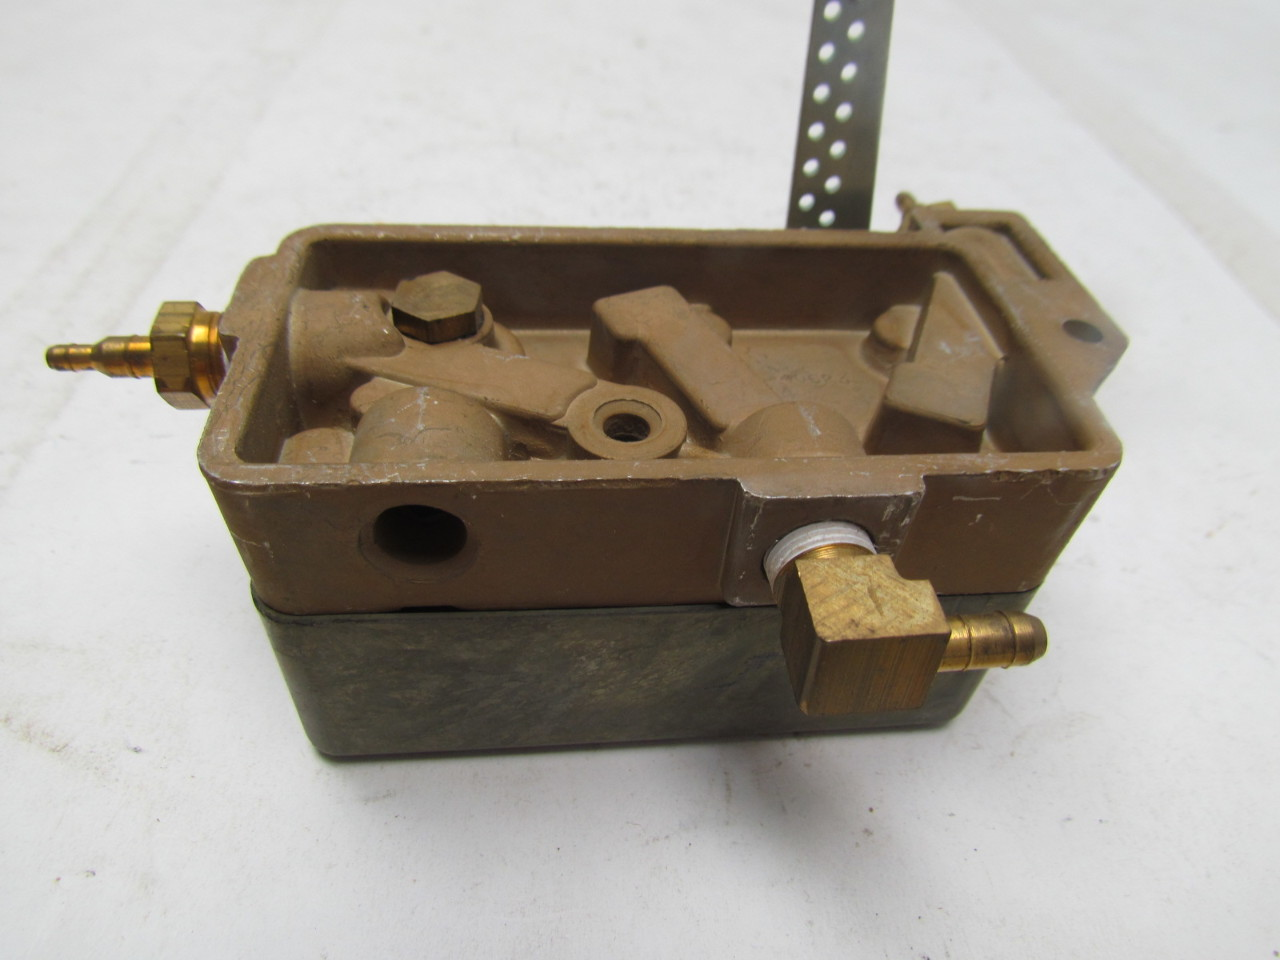 #967535 Johnson Controls D 9502 Damper Actuator Positioner EBay Highly Rated 2219 Damper Control Motor wallpapers with 1280x960 px on helpvideos.info - Air Conditioners, Air Coolers and more